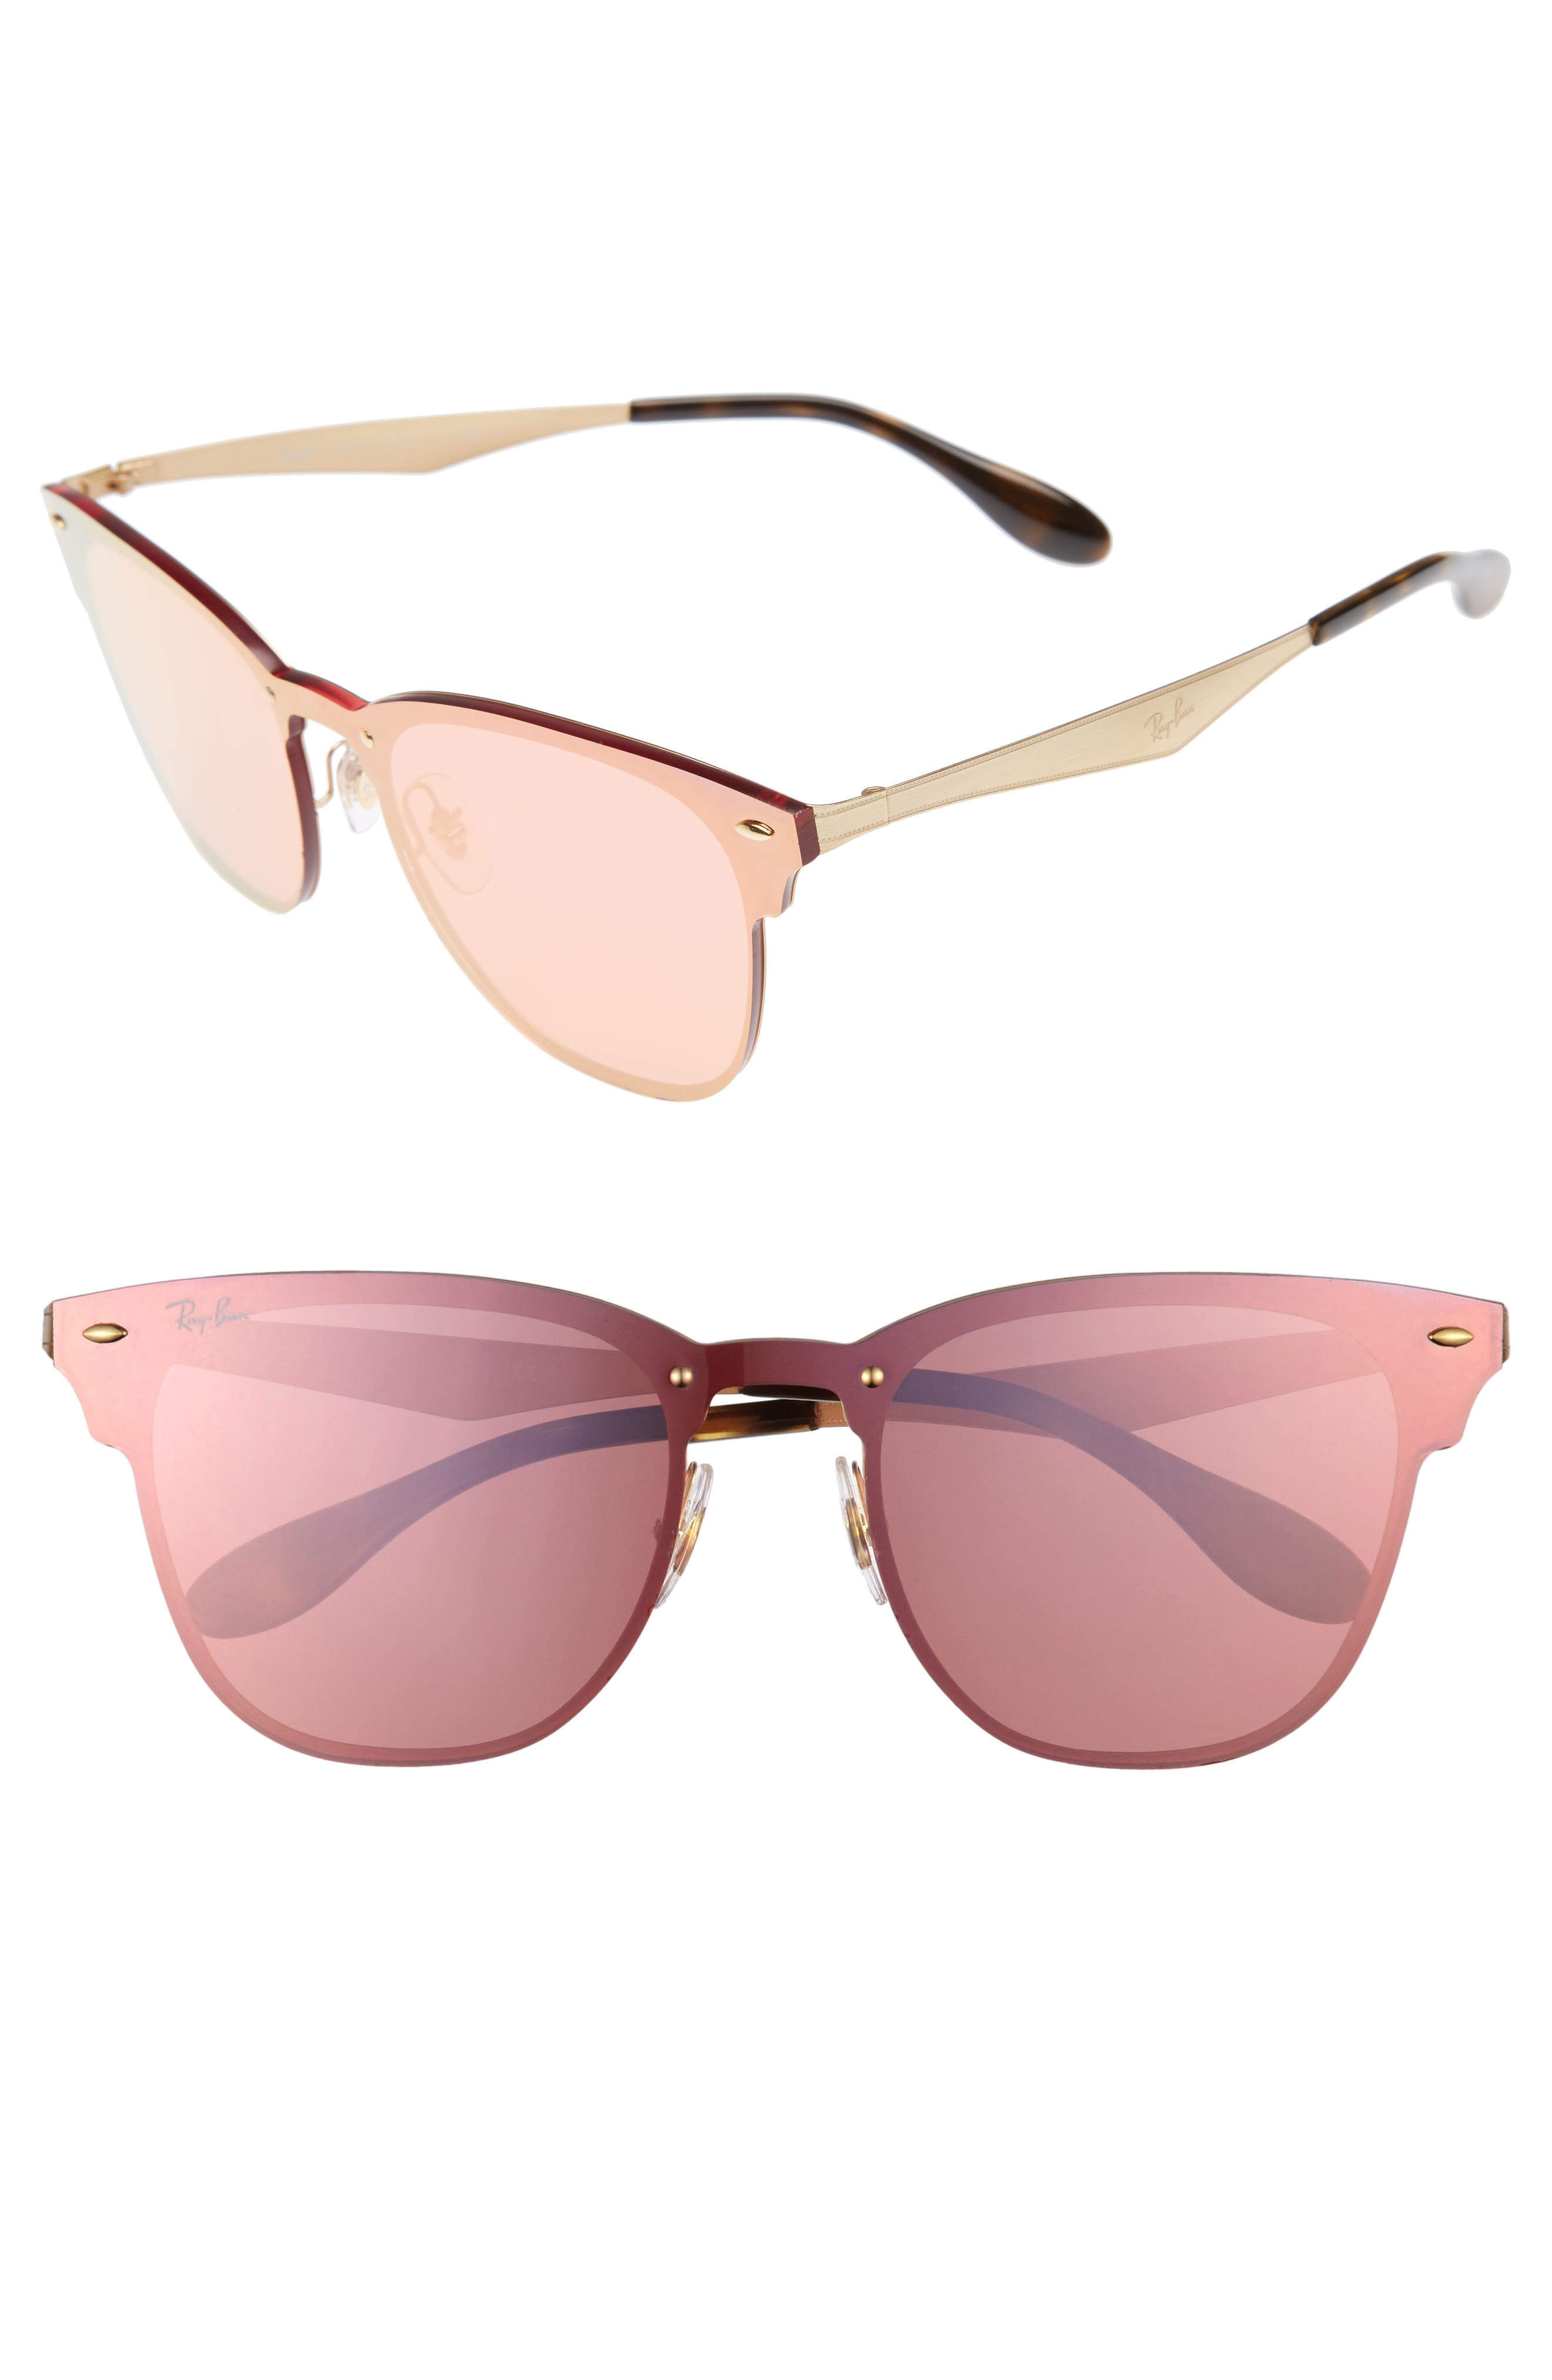 50mm Round Clubmaster Sunglasses,                             Main thumbnail 3, color,